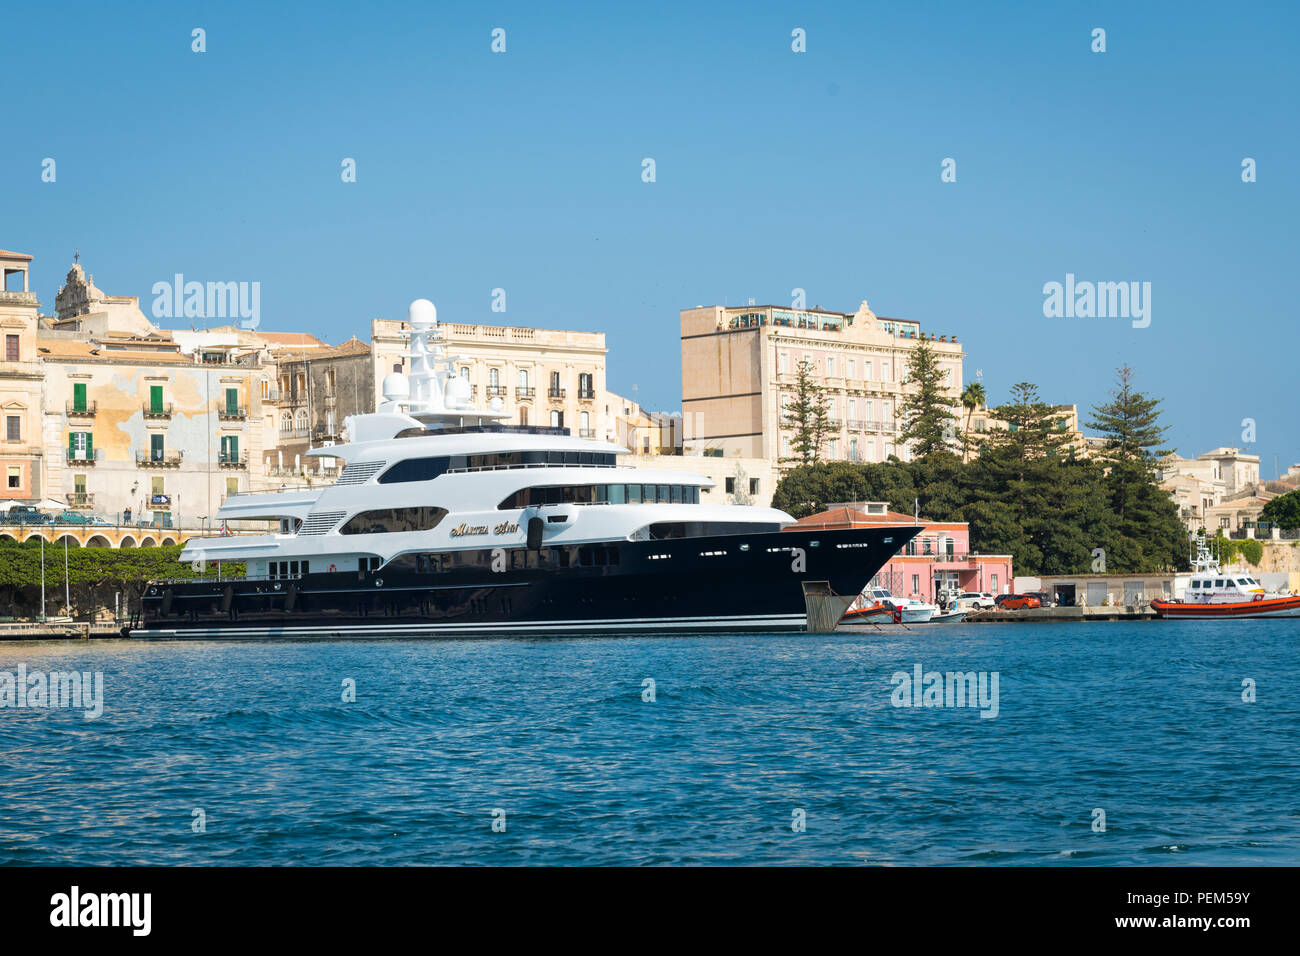 Italy Sicily Syracuse Siracusa Ortygia island stronghold ocean going luxury private yacht cruise ship boat Martha Ann berth mooring Union Jack - Stock Image